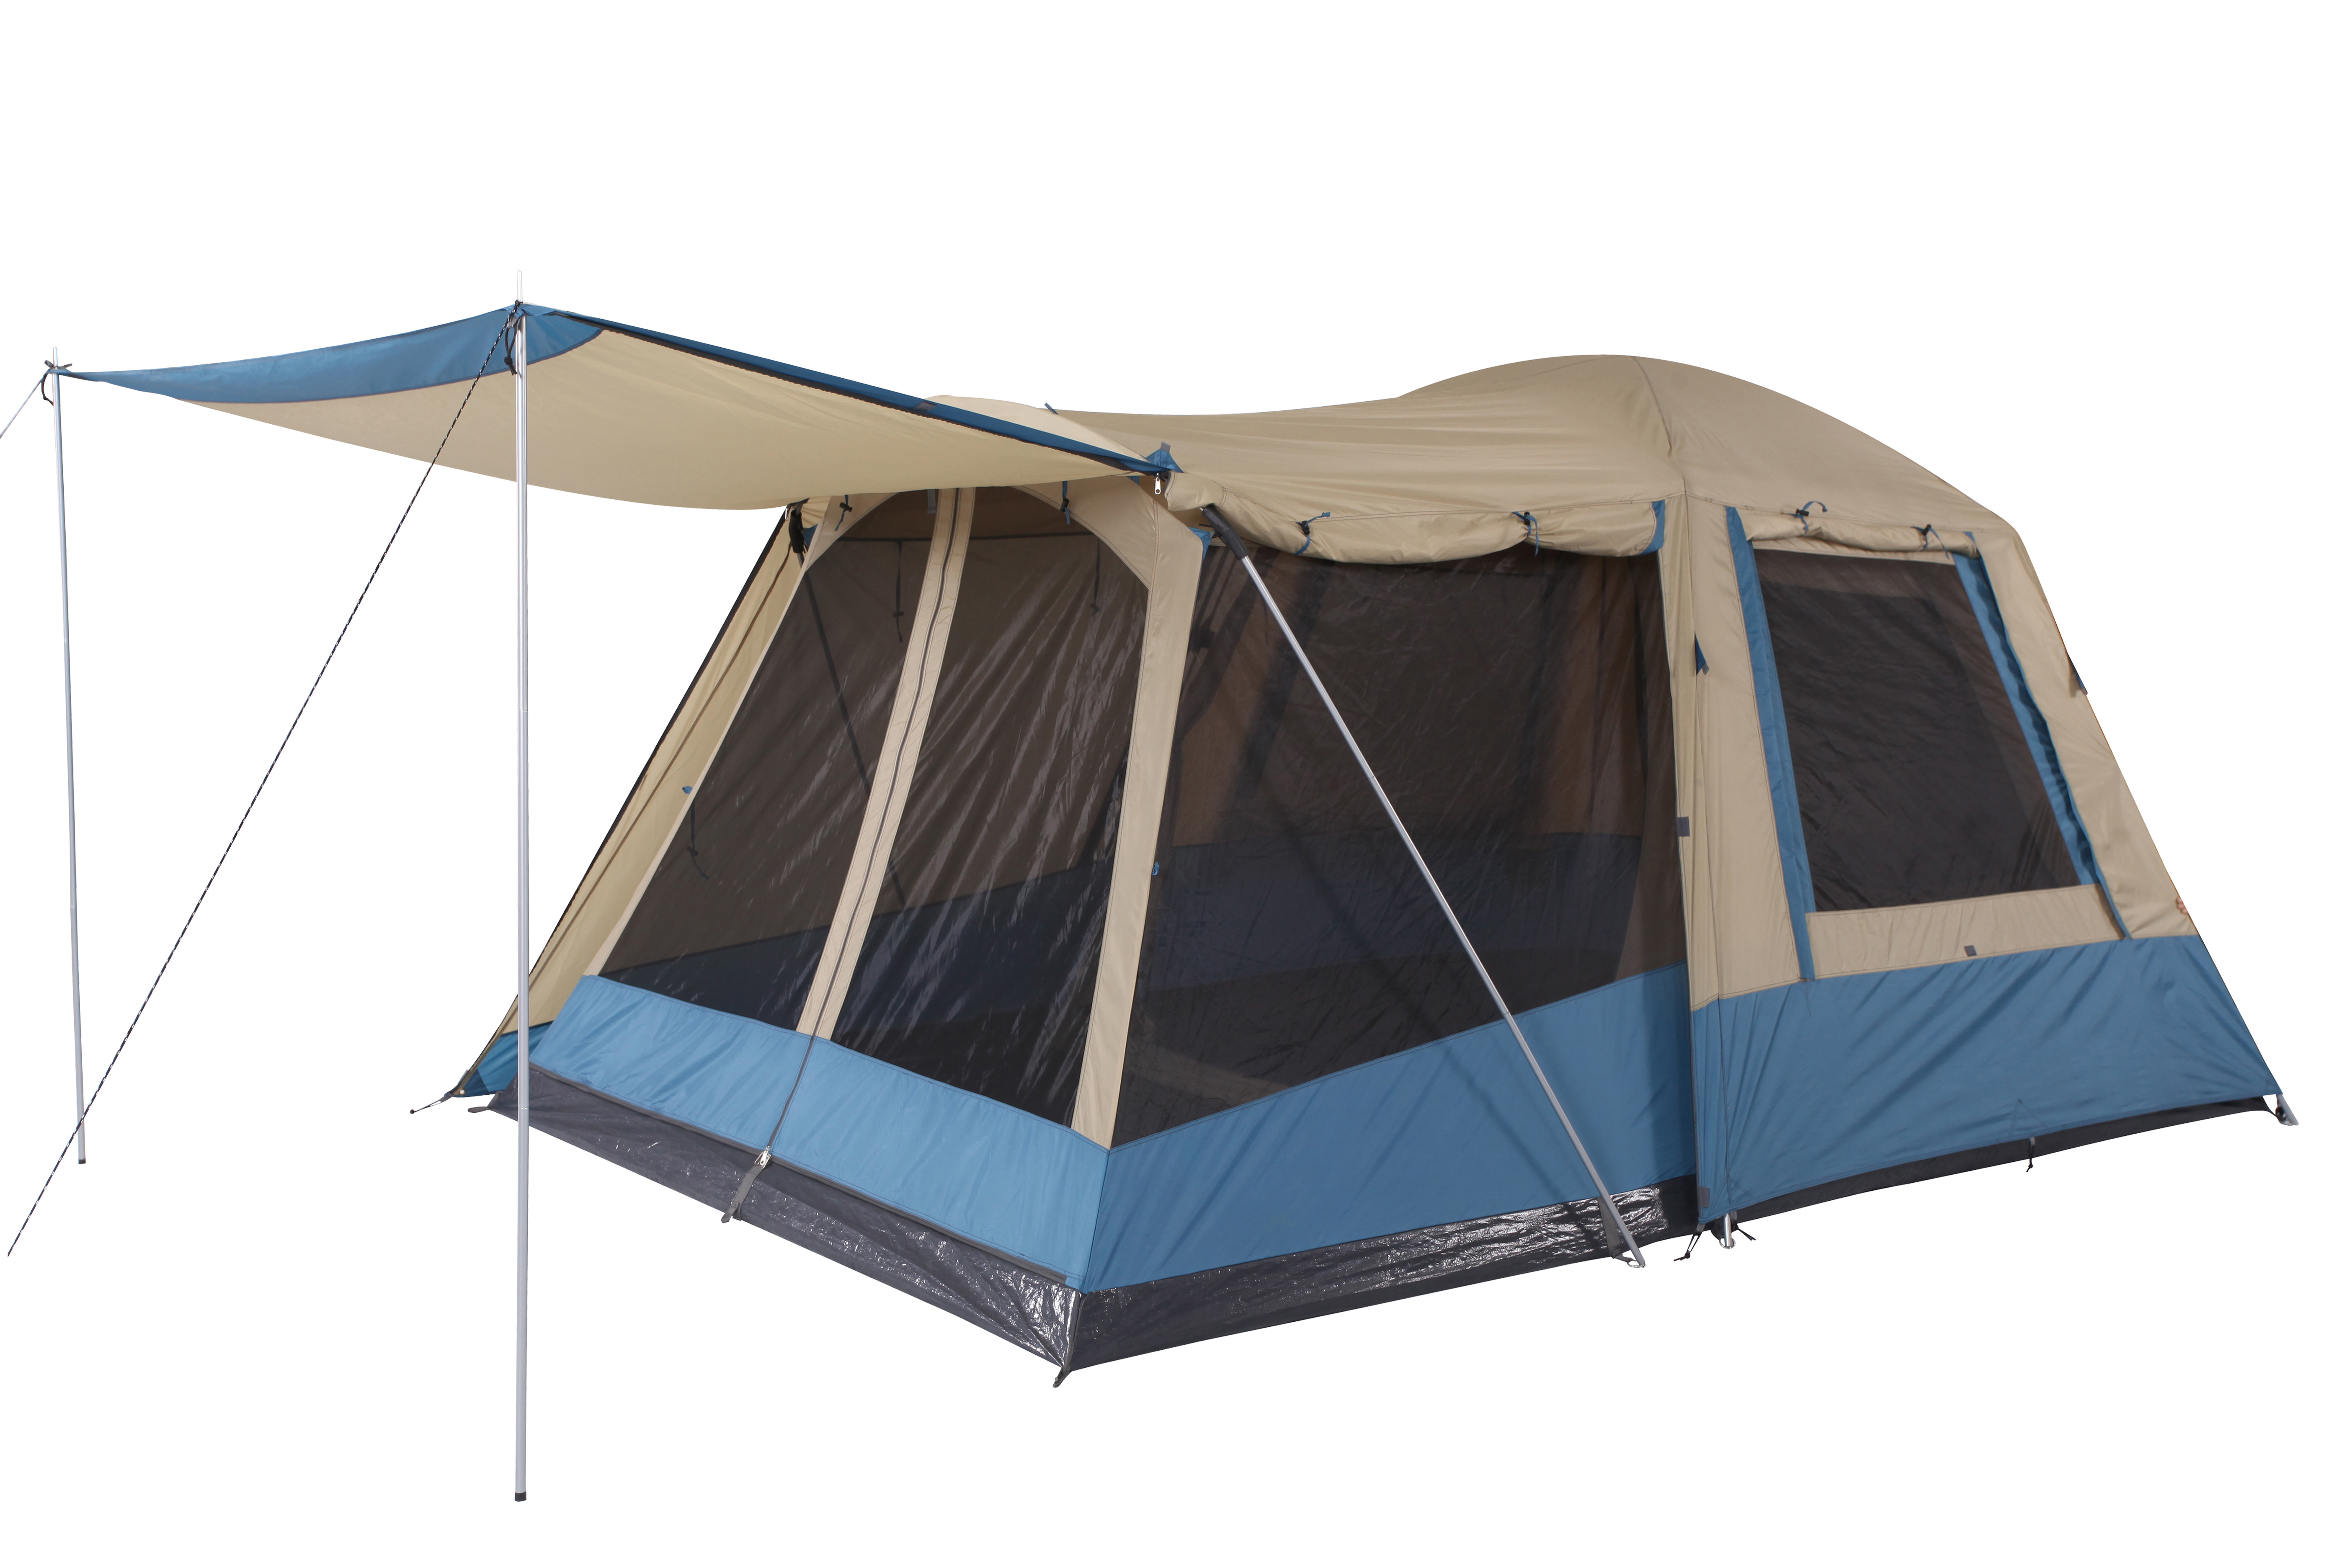 Oztrail family 6 dome tent 2 room 6 person spacious for Small 2 room tent